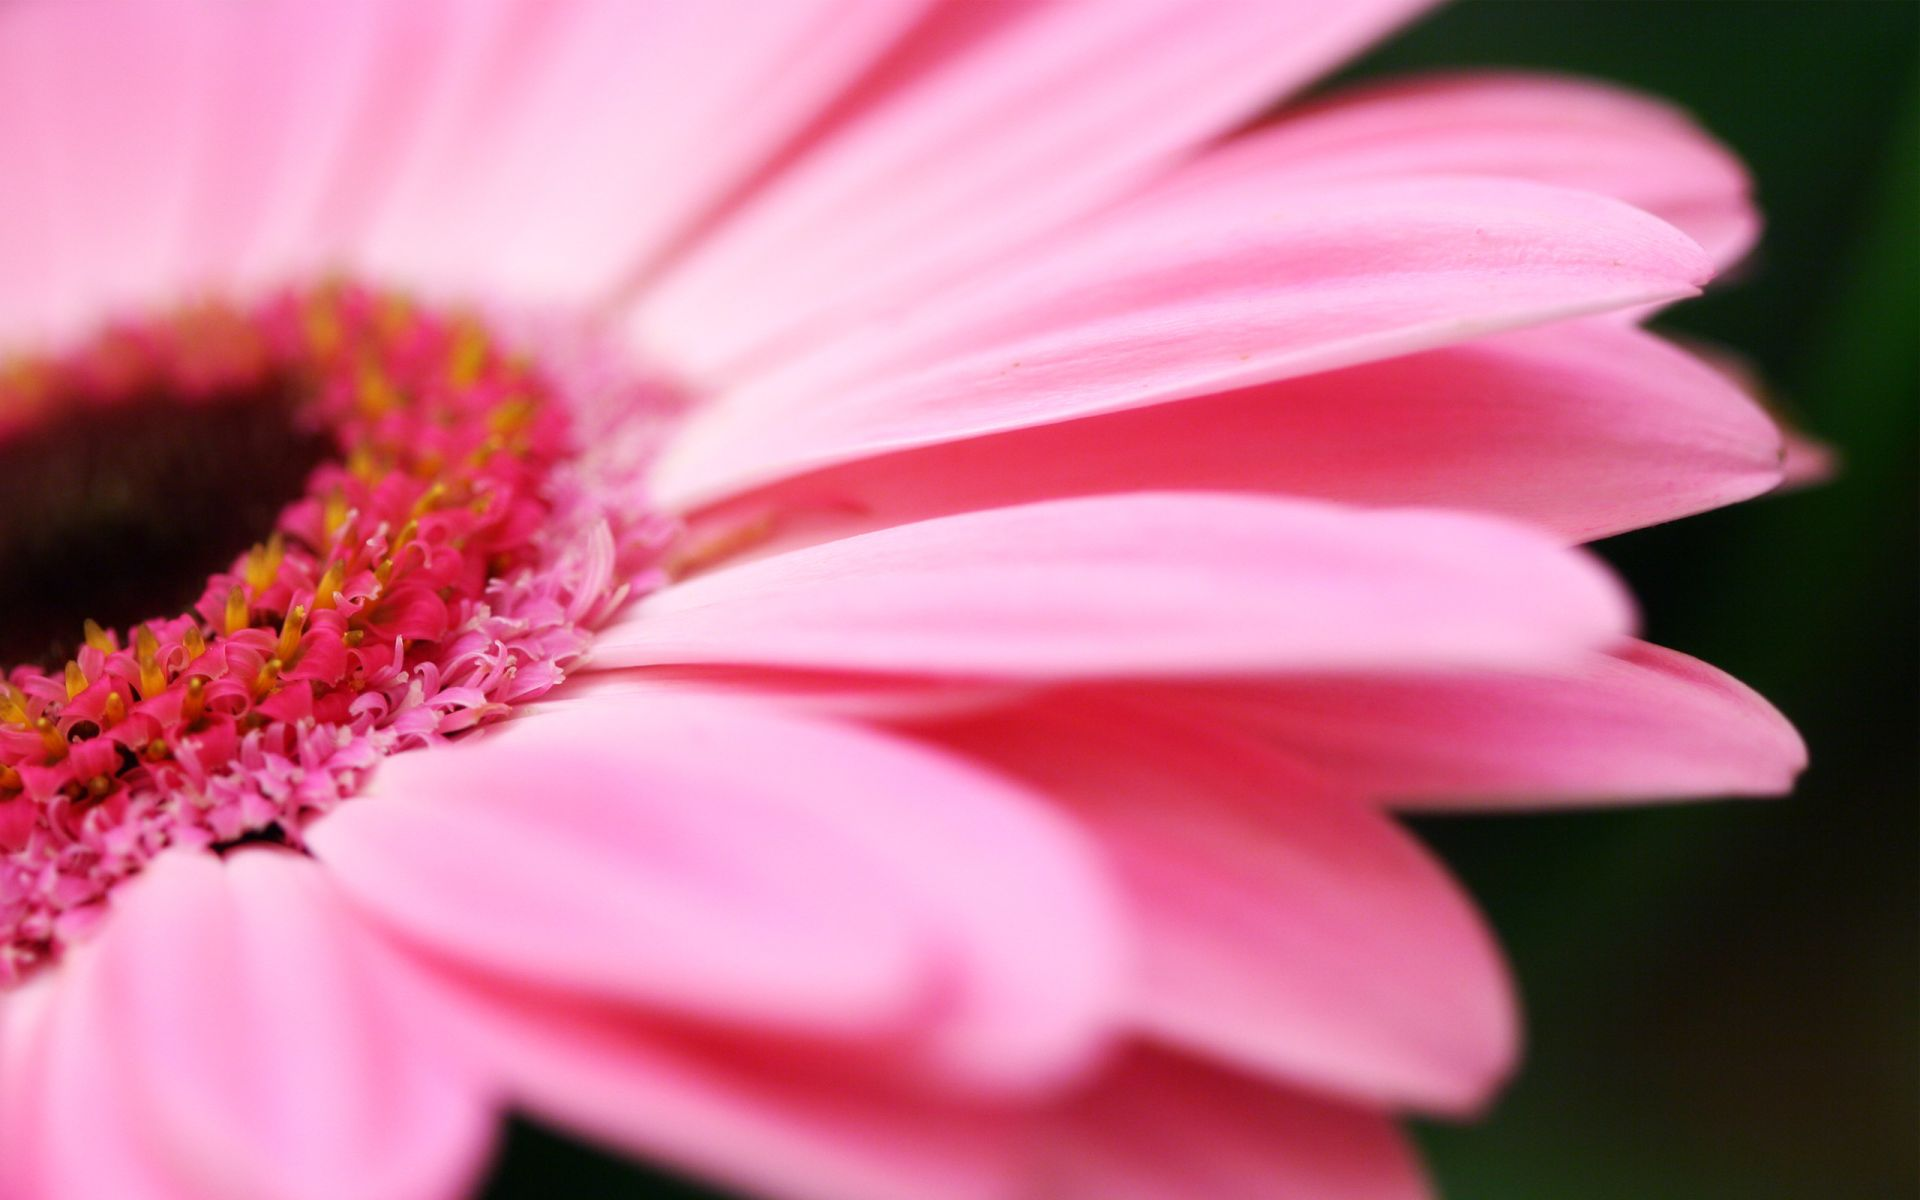 cute flowers images and wallpapers Download